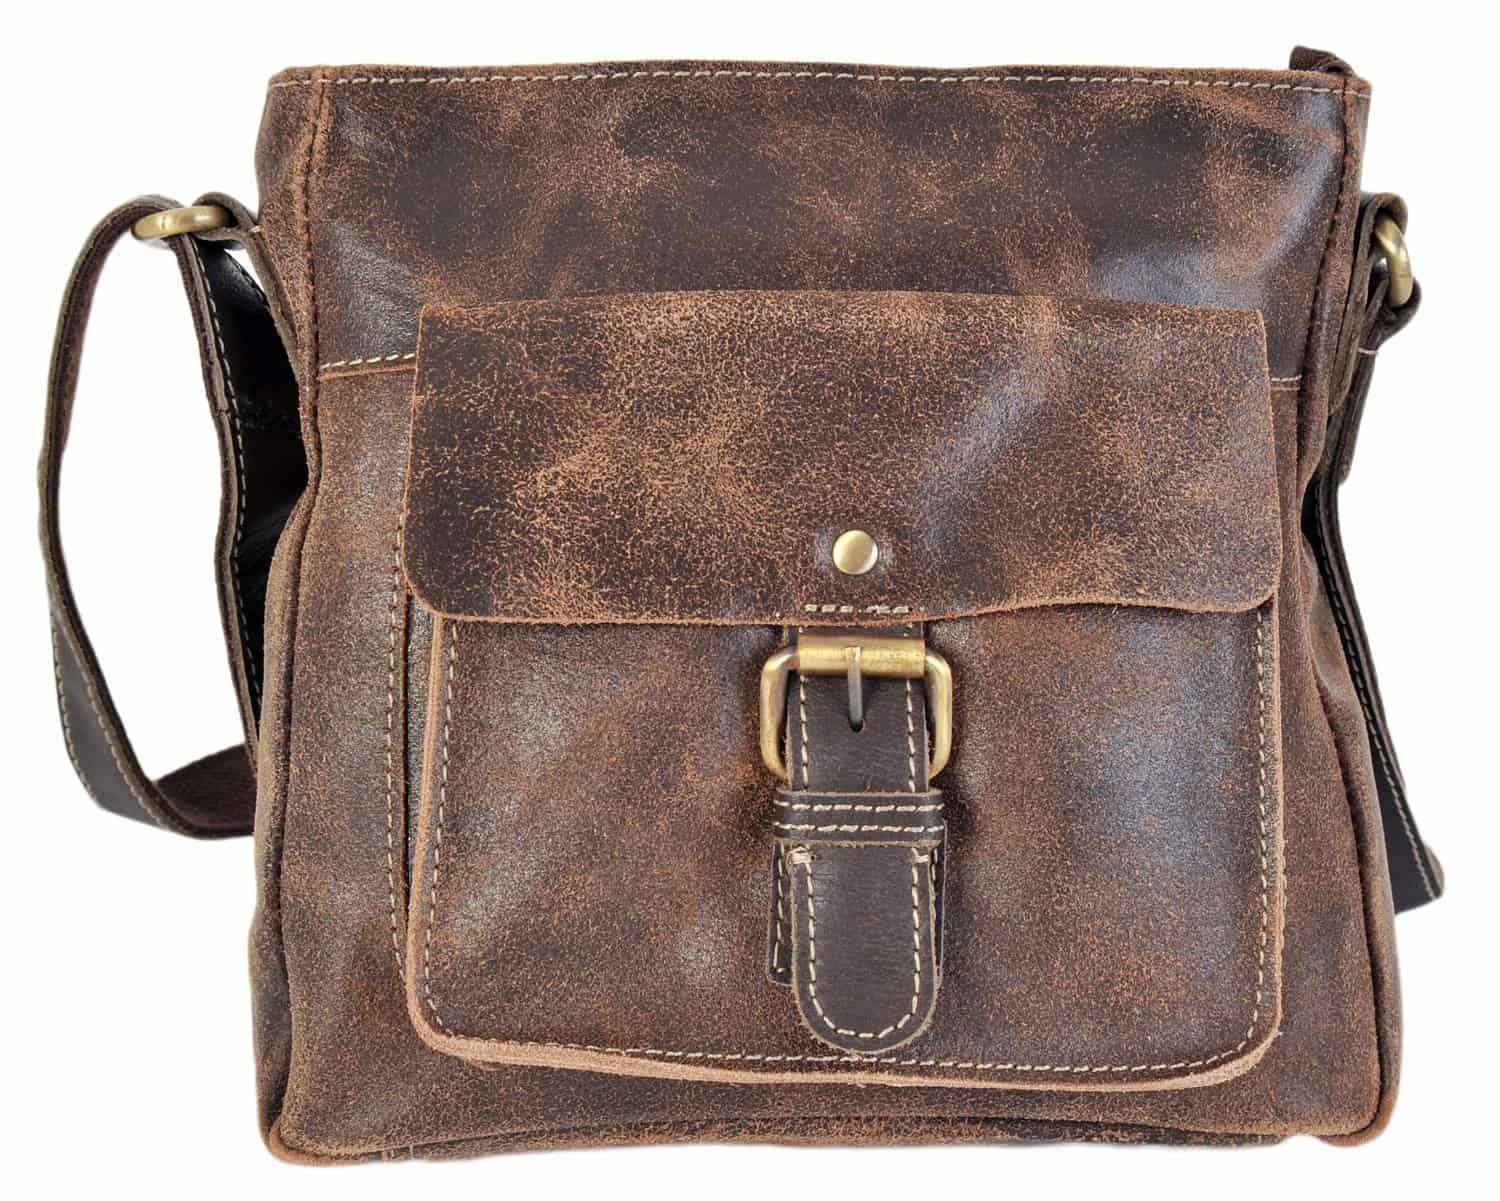 599e8d8fa6 Rowallan Distressed Brown Leather Top Zip Crossbody Bag 9266 - David ...